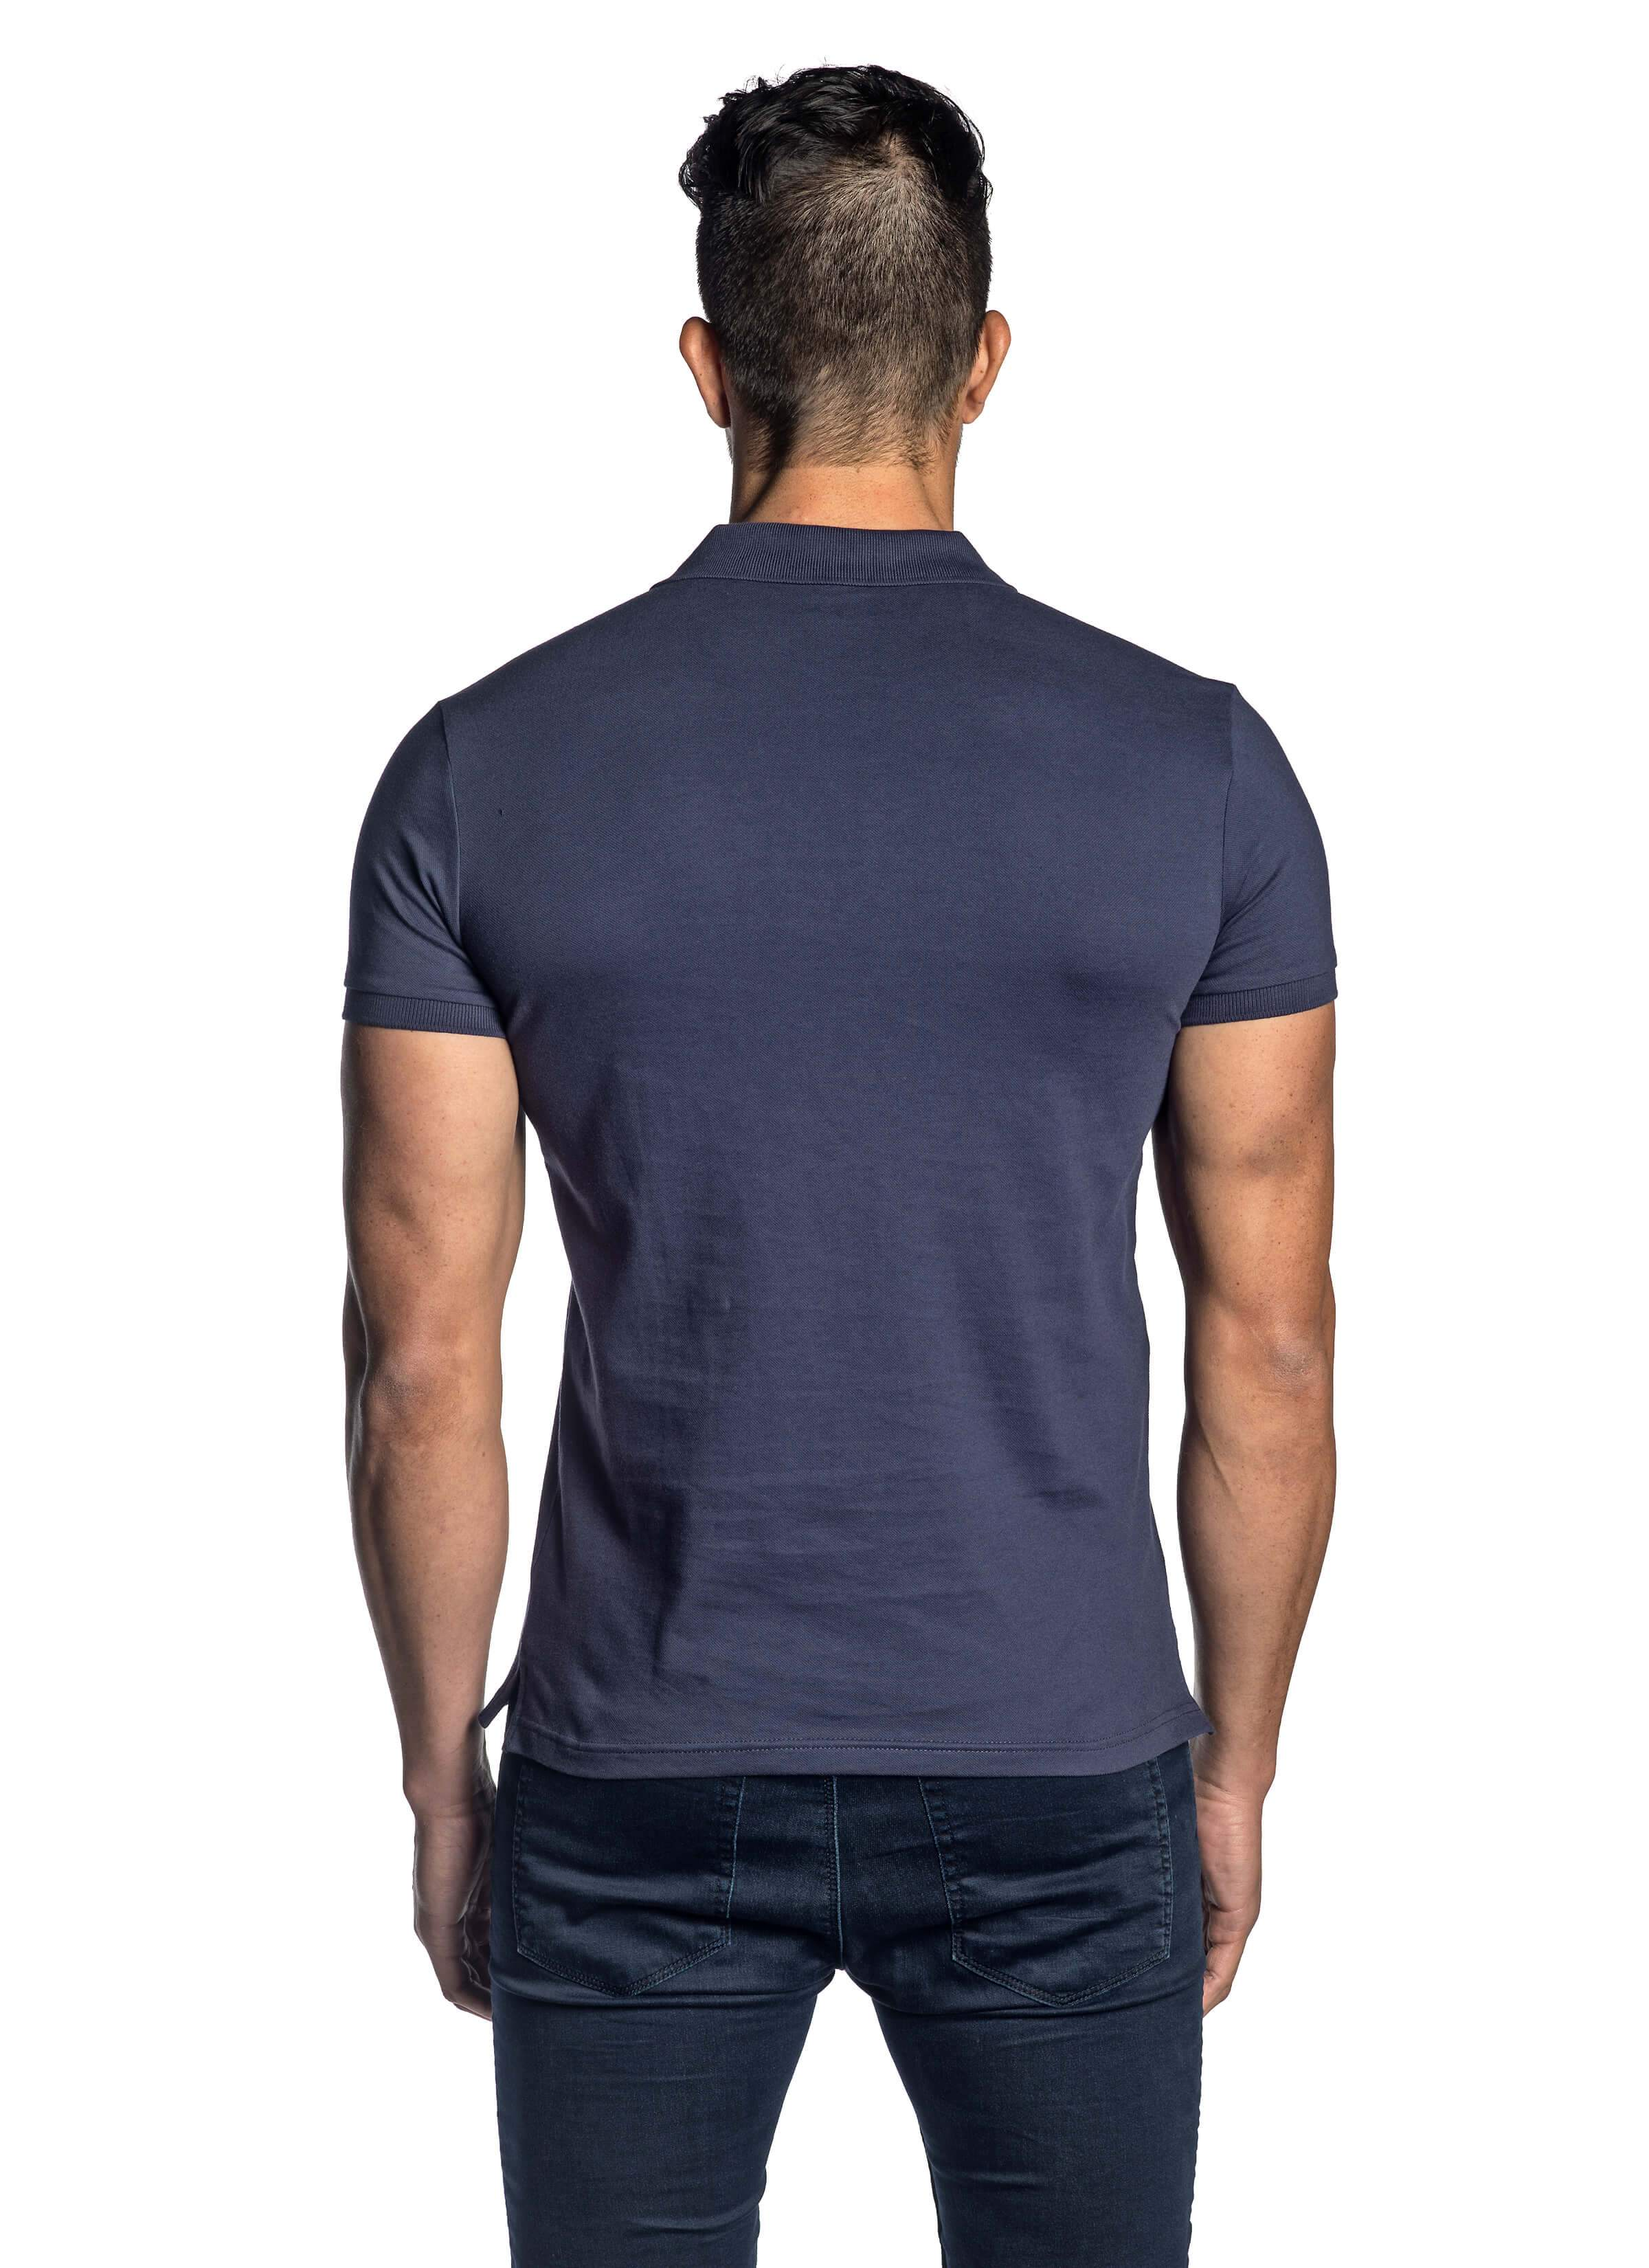 Navy Short Sleeve Polo for Men - back - PS-5008 - Jared Lang